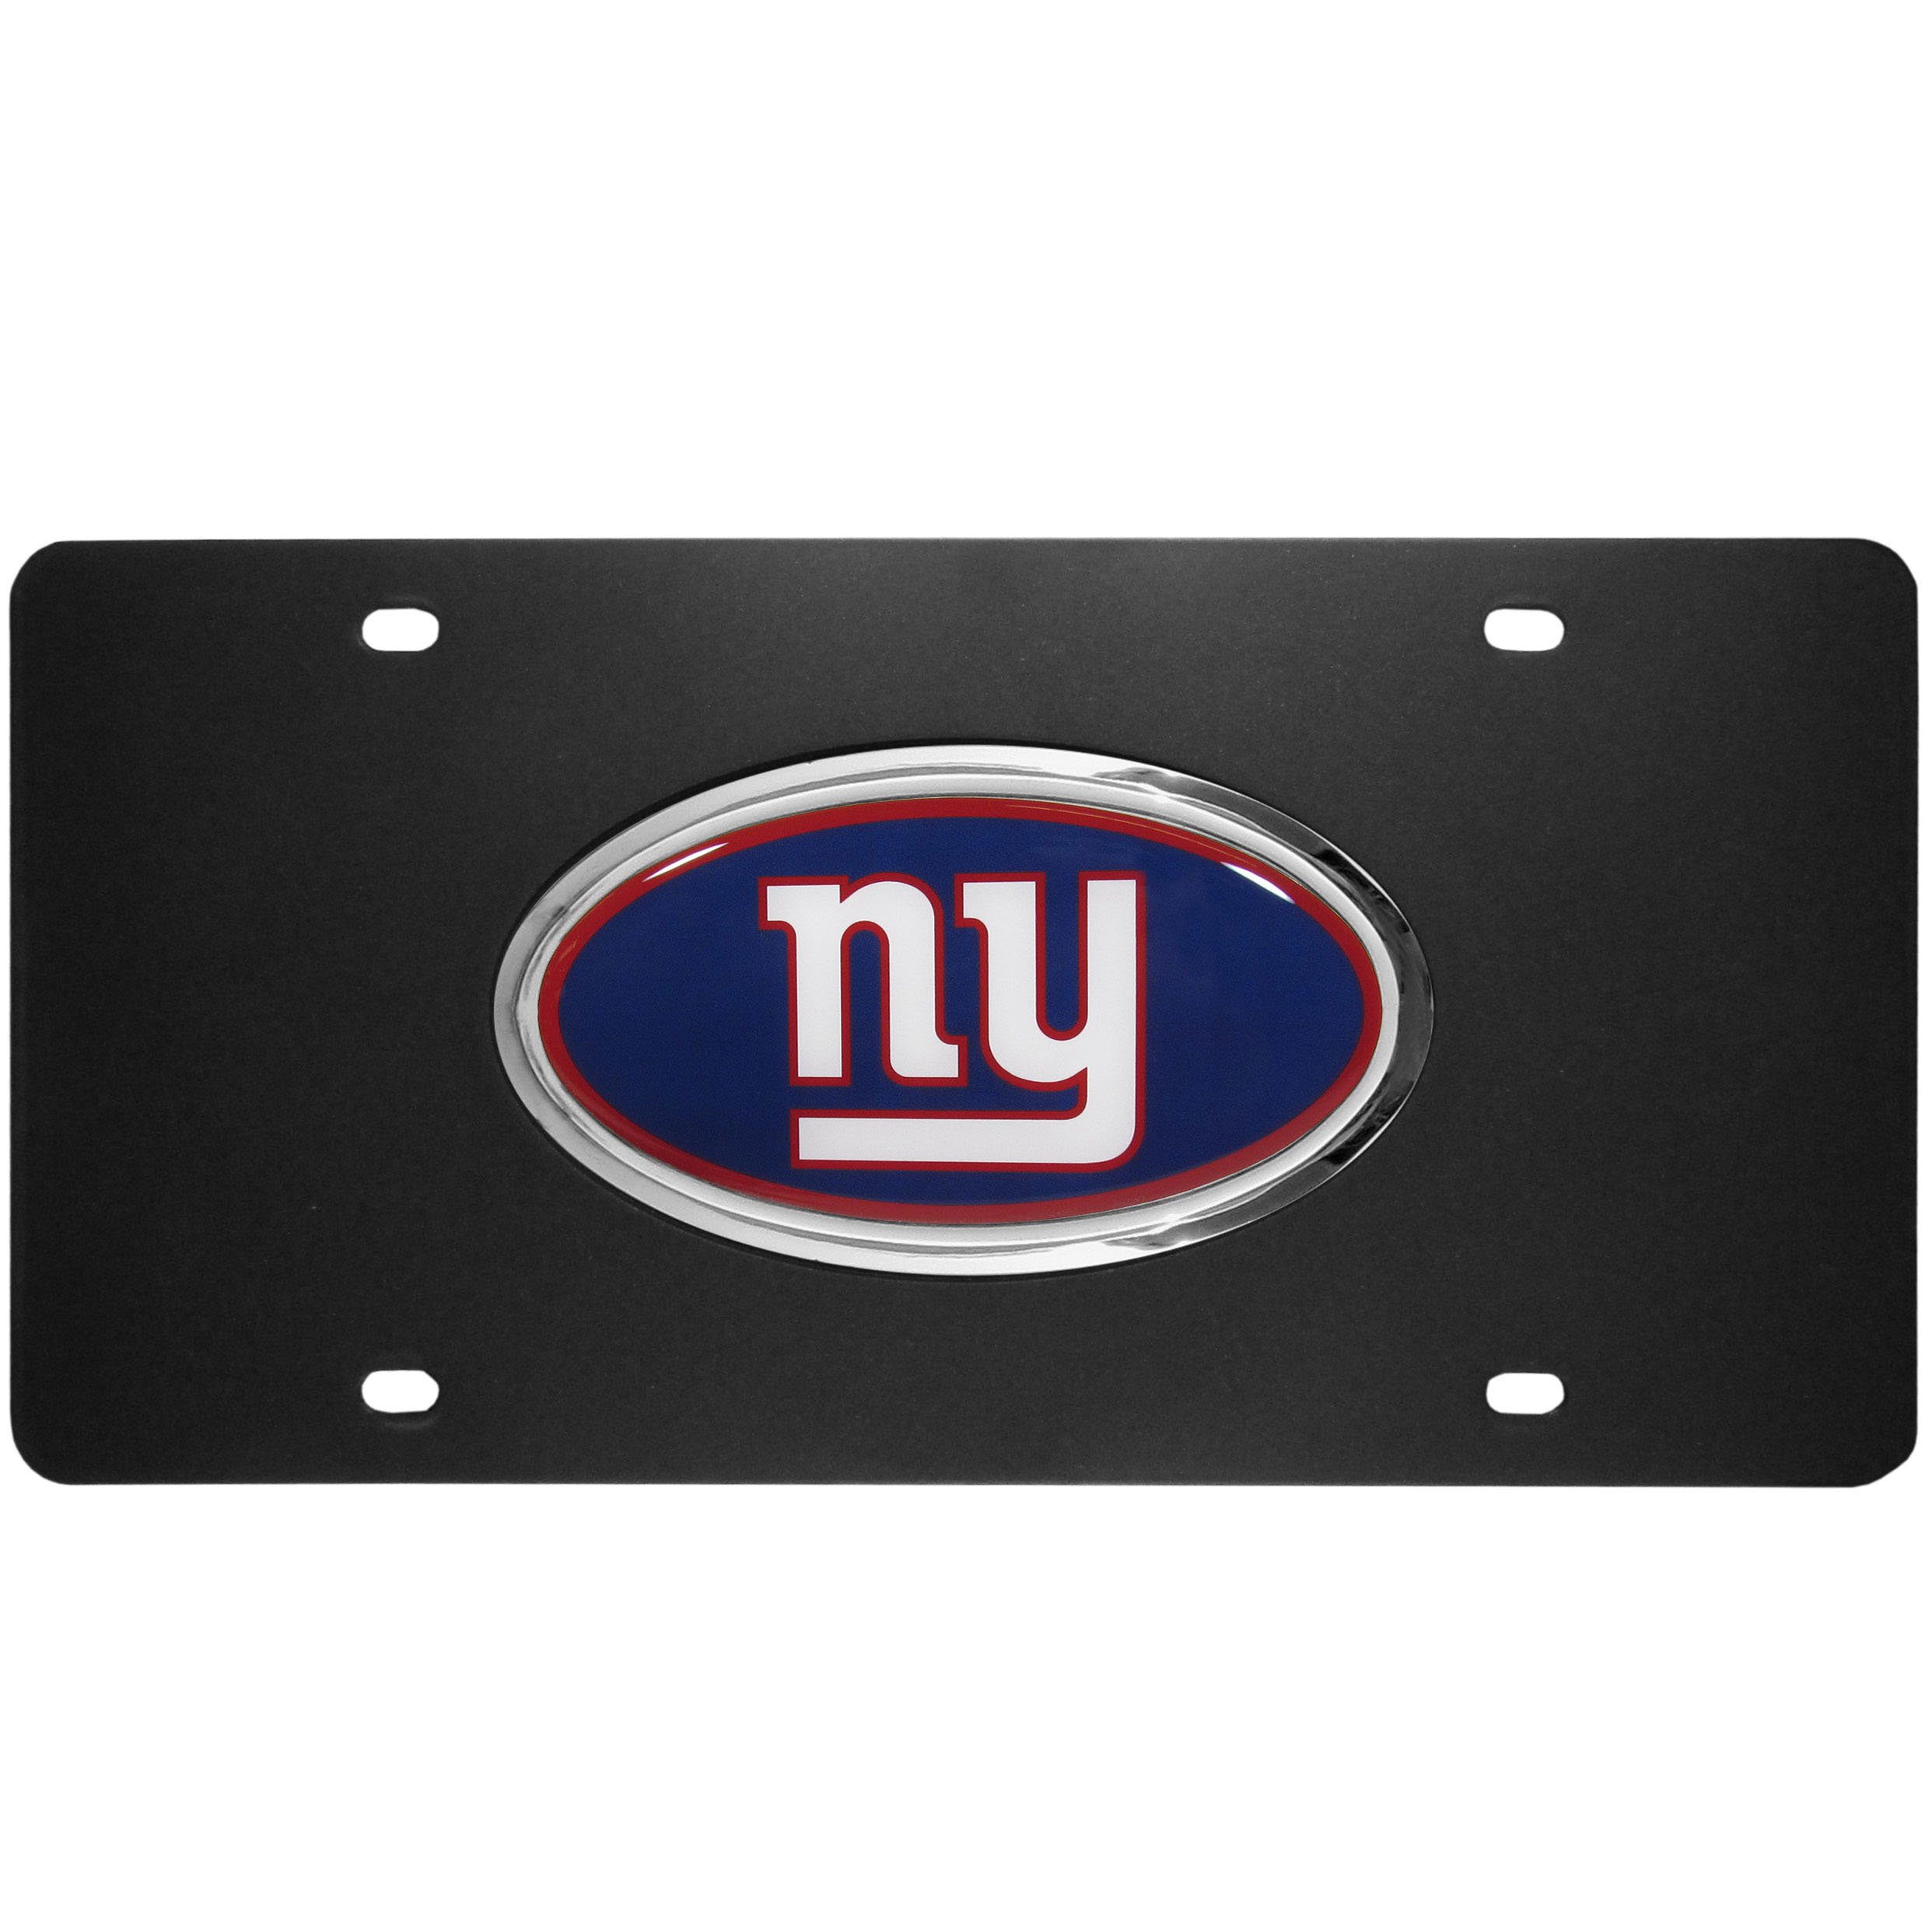 New York Giants Acrylic License Plate - Our New York Giants acrylic license plate is a step above the rest. It is made of thick, durable acrylic with a matte black finish and raised chrome saddle for the extra large team emblem.